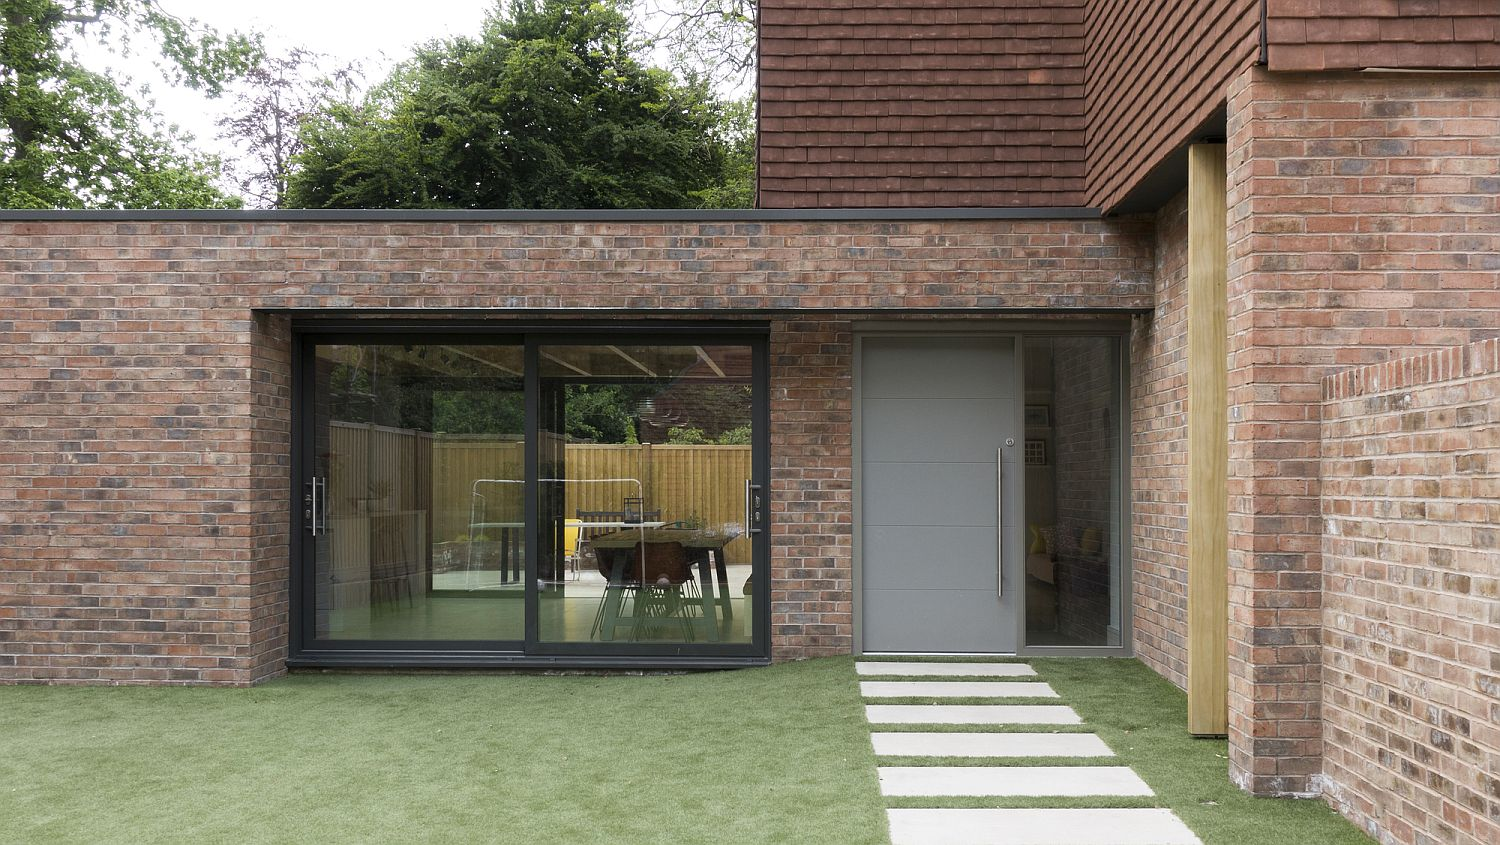 Brick and terracotta exterior of the London home